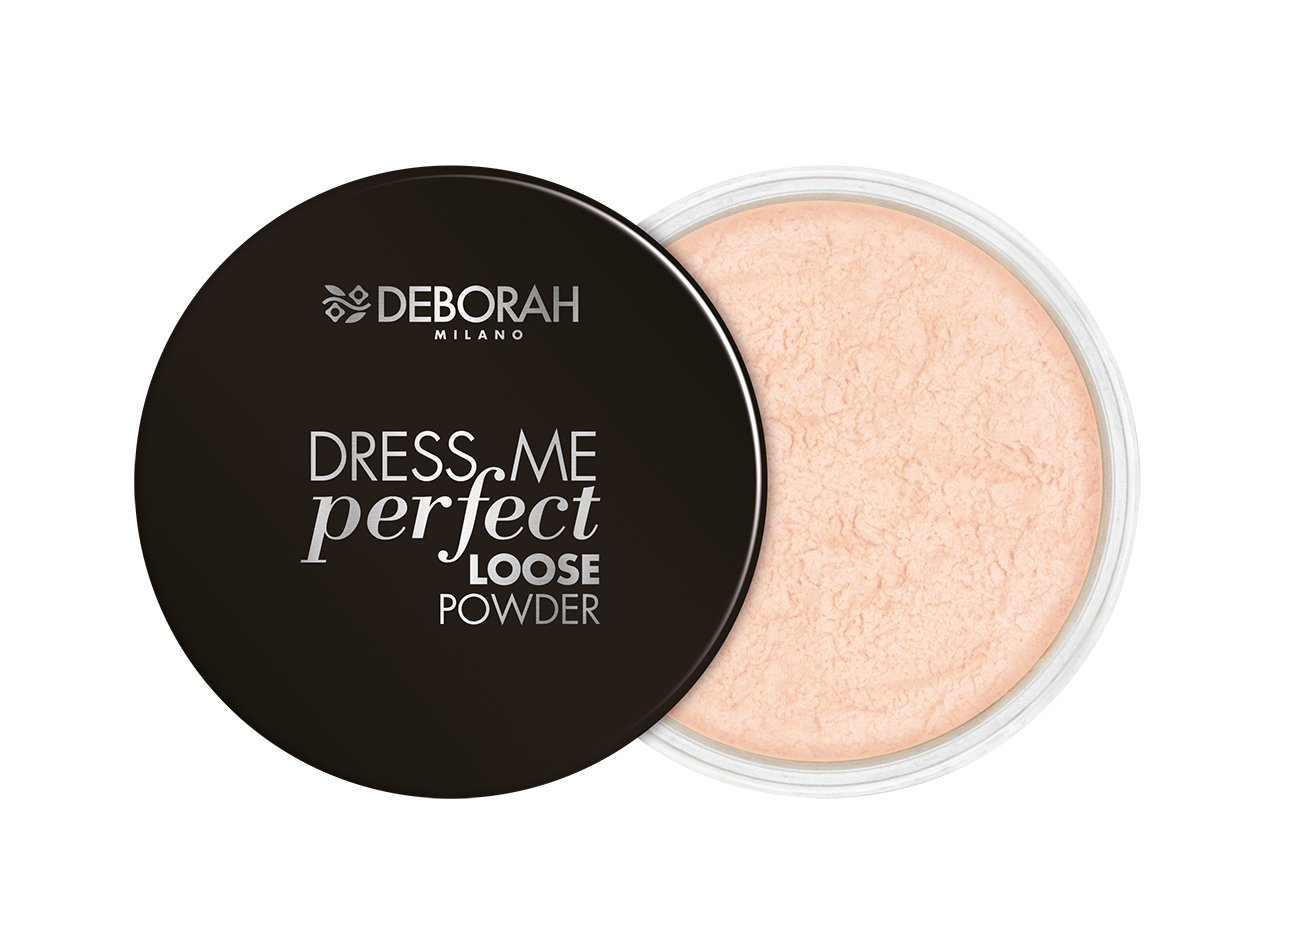 Biri pudra Deborah Dress Me Perfect 25 g